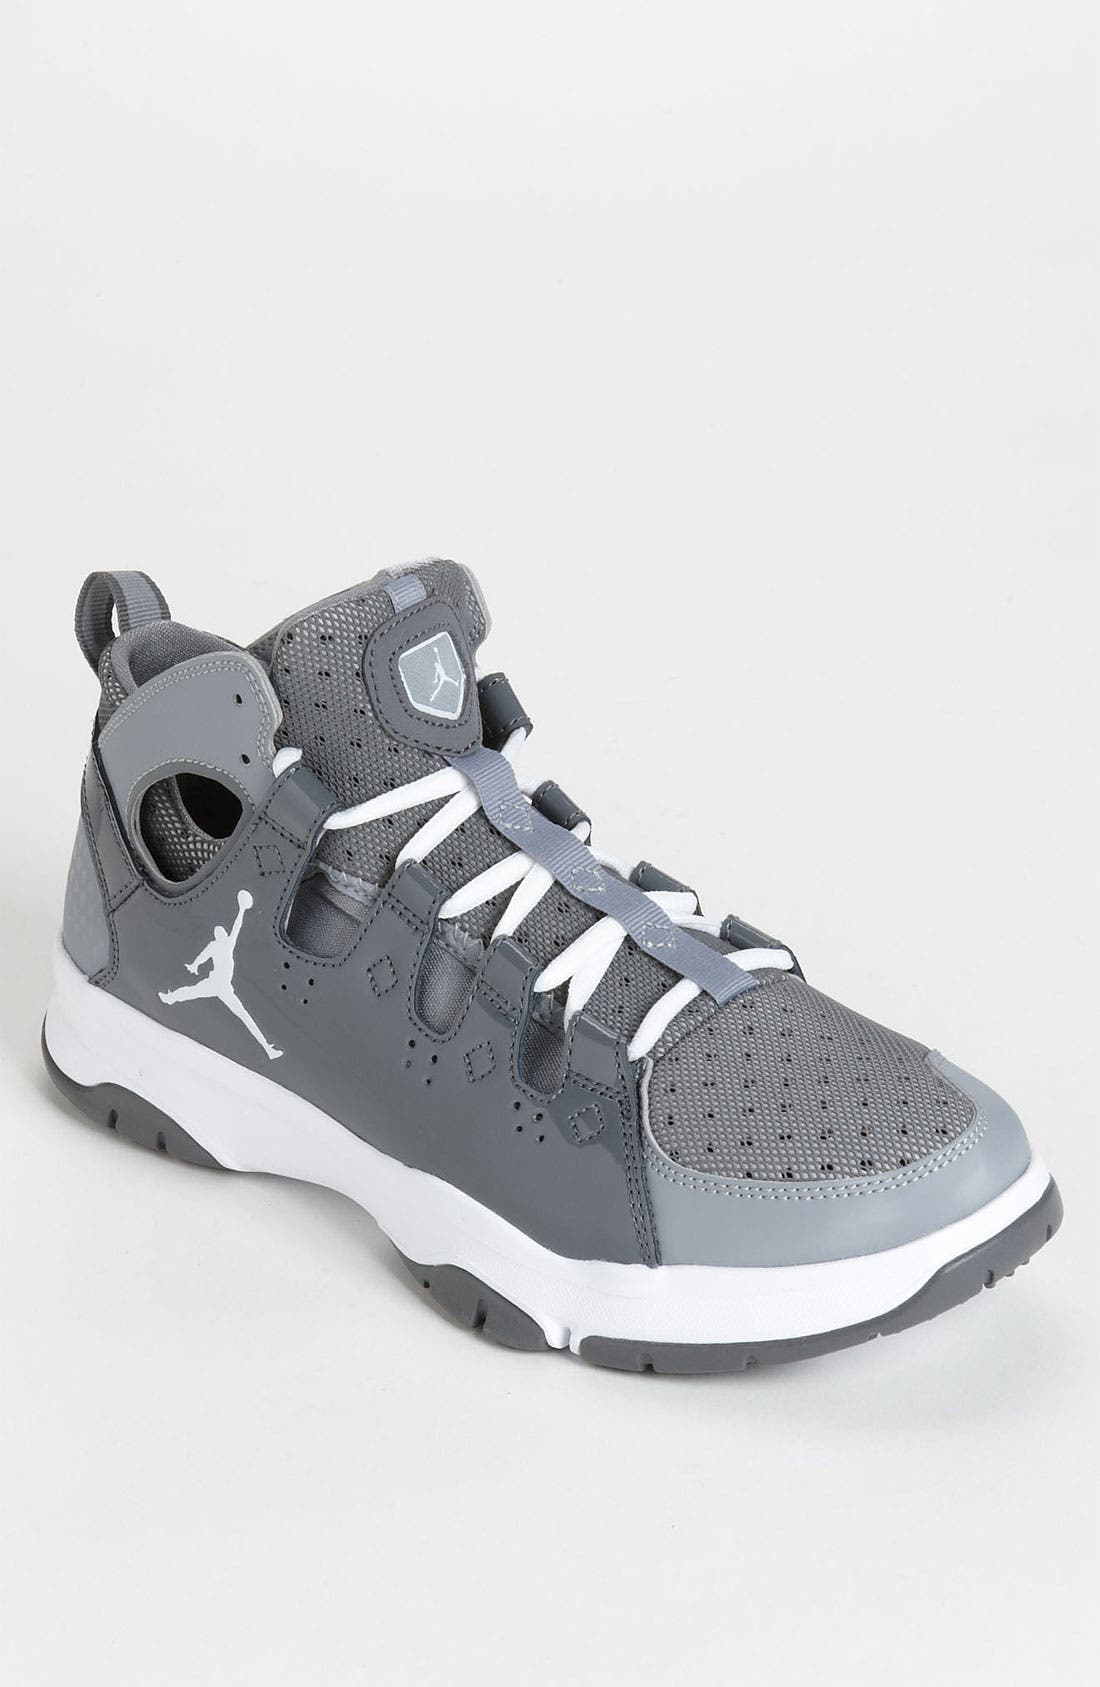 Main Image - Nike 'Jordan Legend TR' Basketball Shoe (Men)